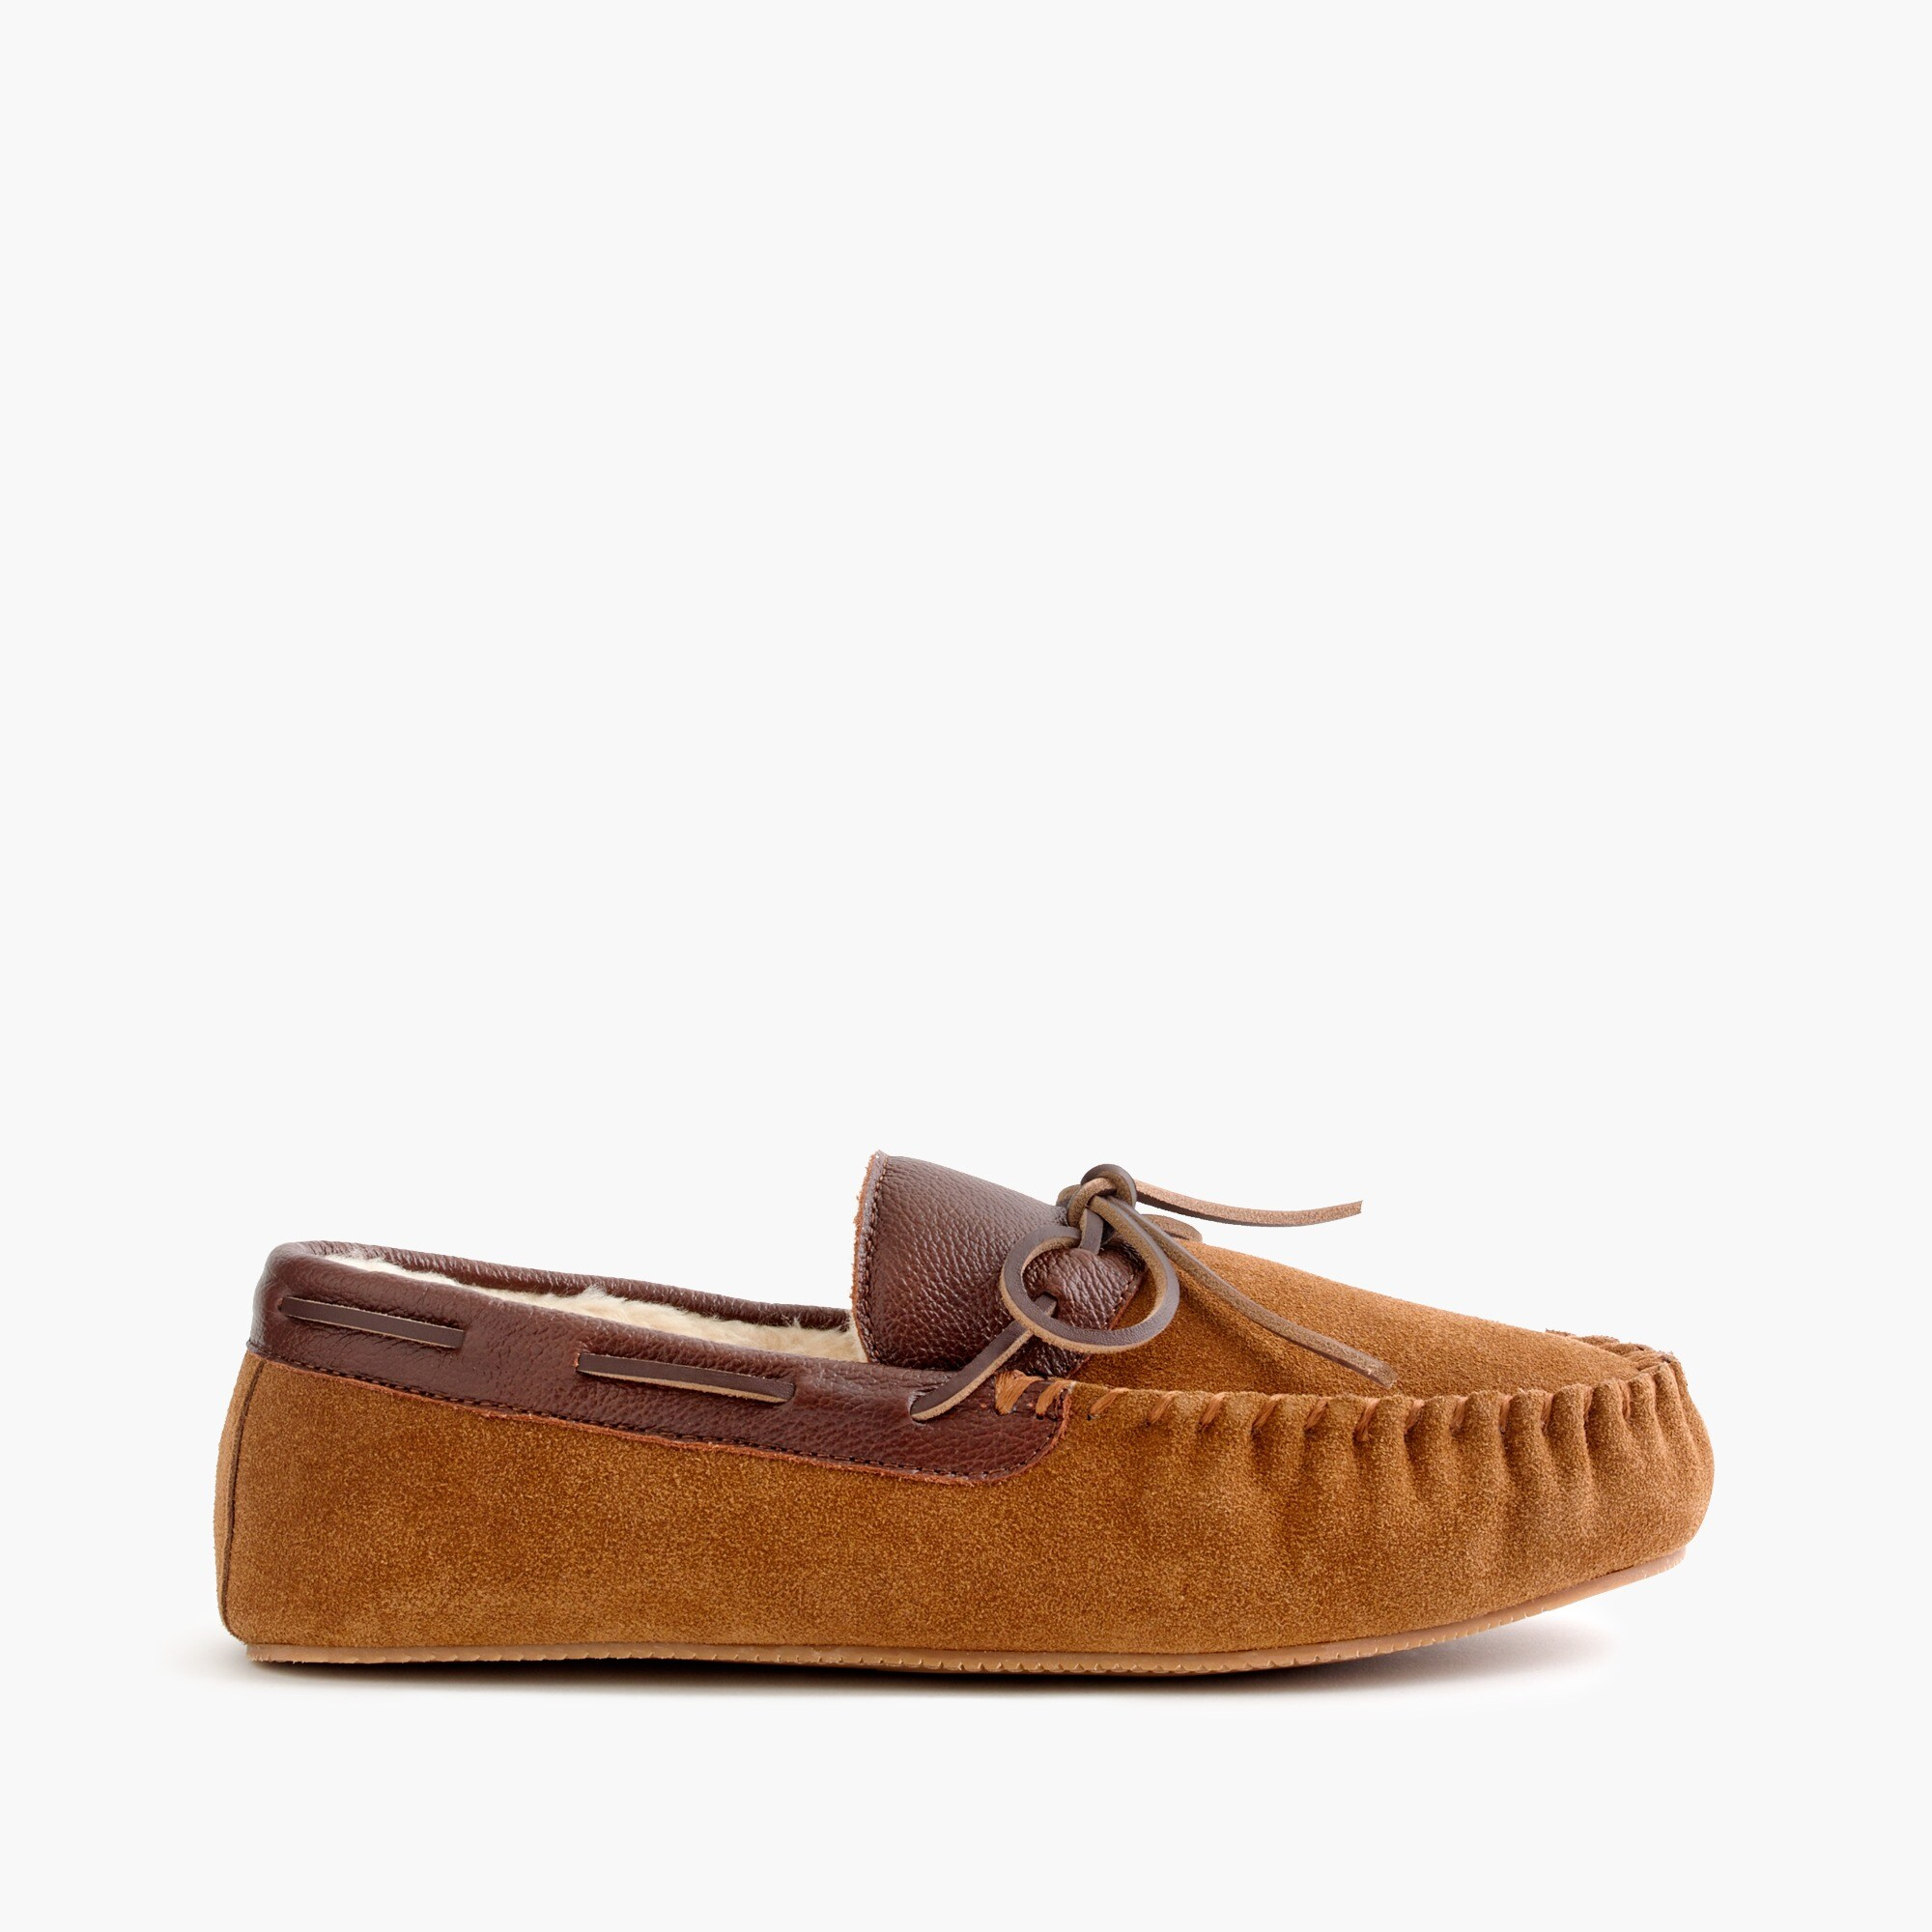 suede-and-leather slippers : men's slippers